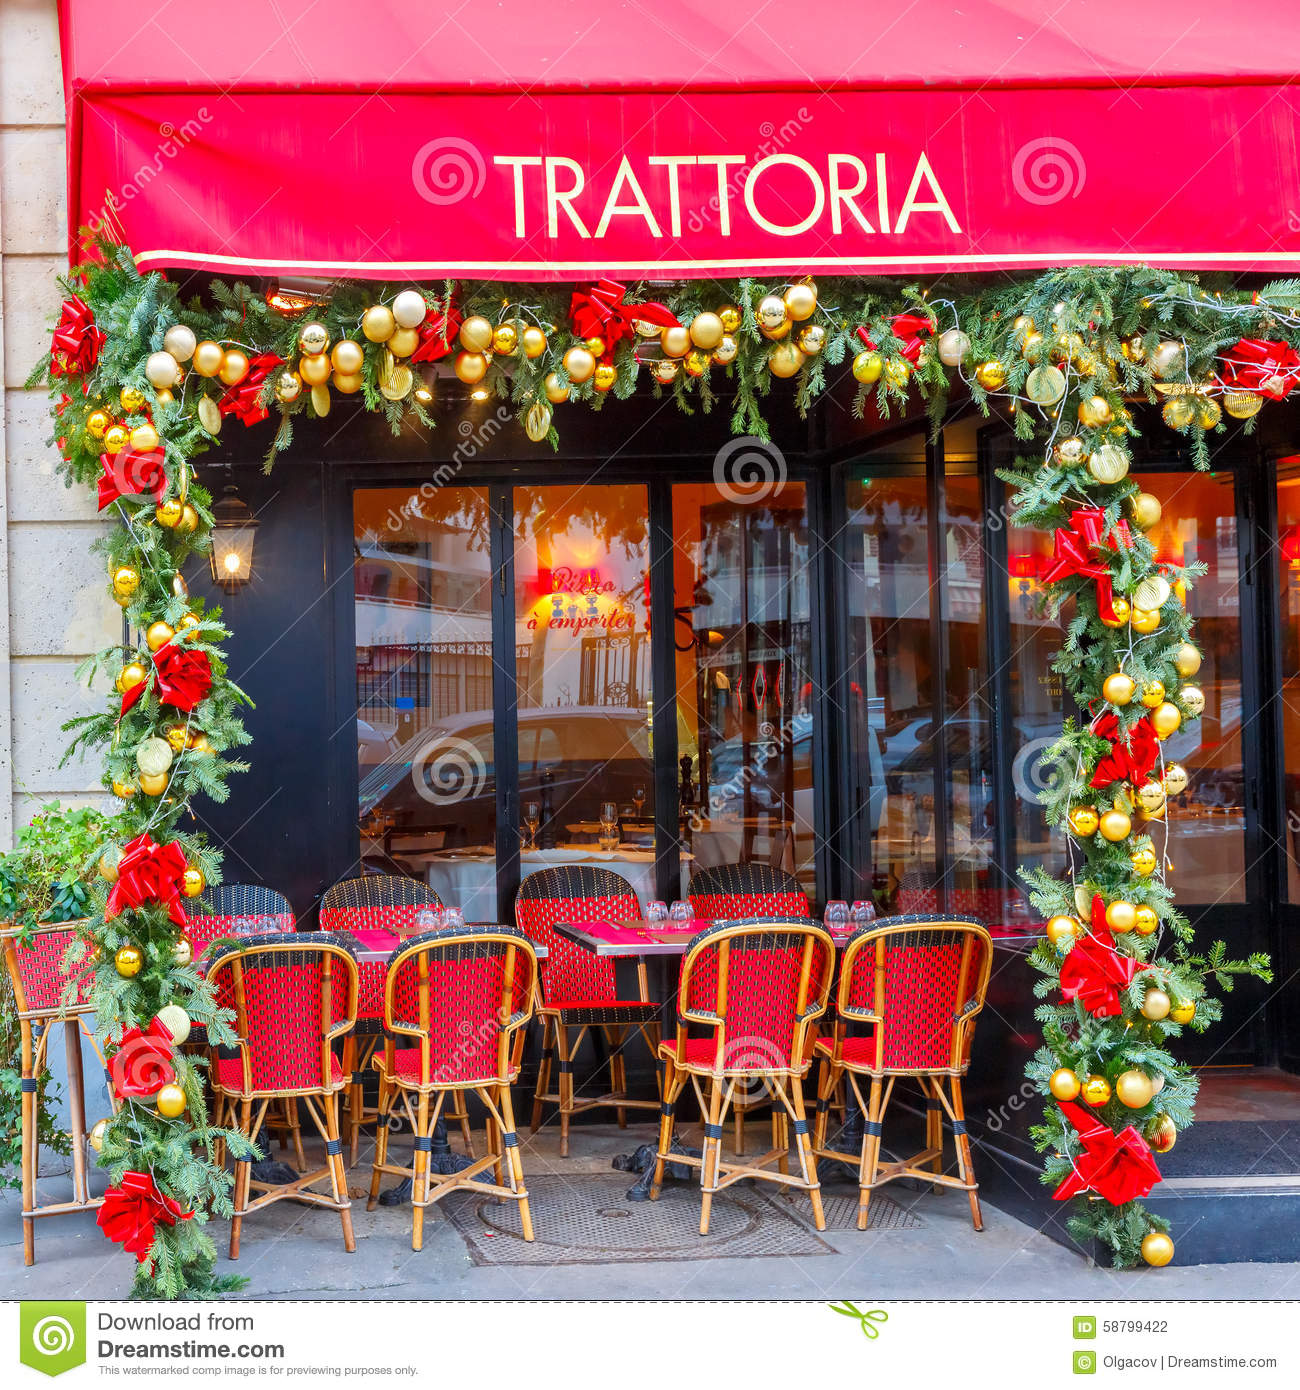 Trattoria dell angelo near eiffel tower paris editorial